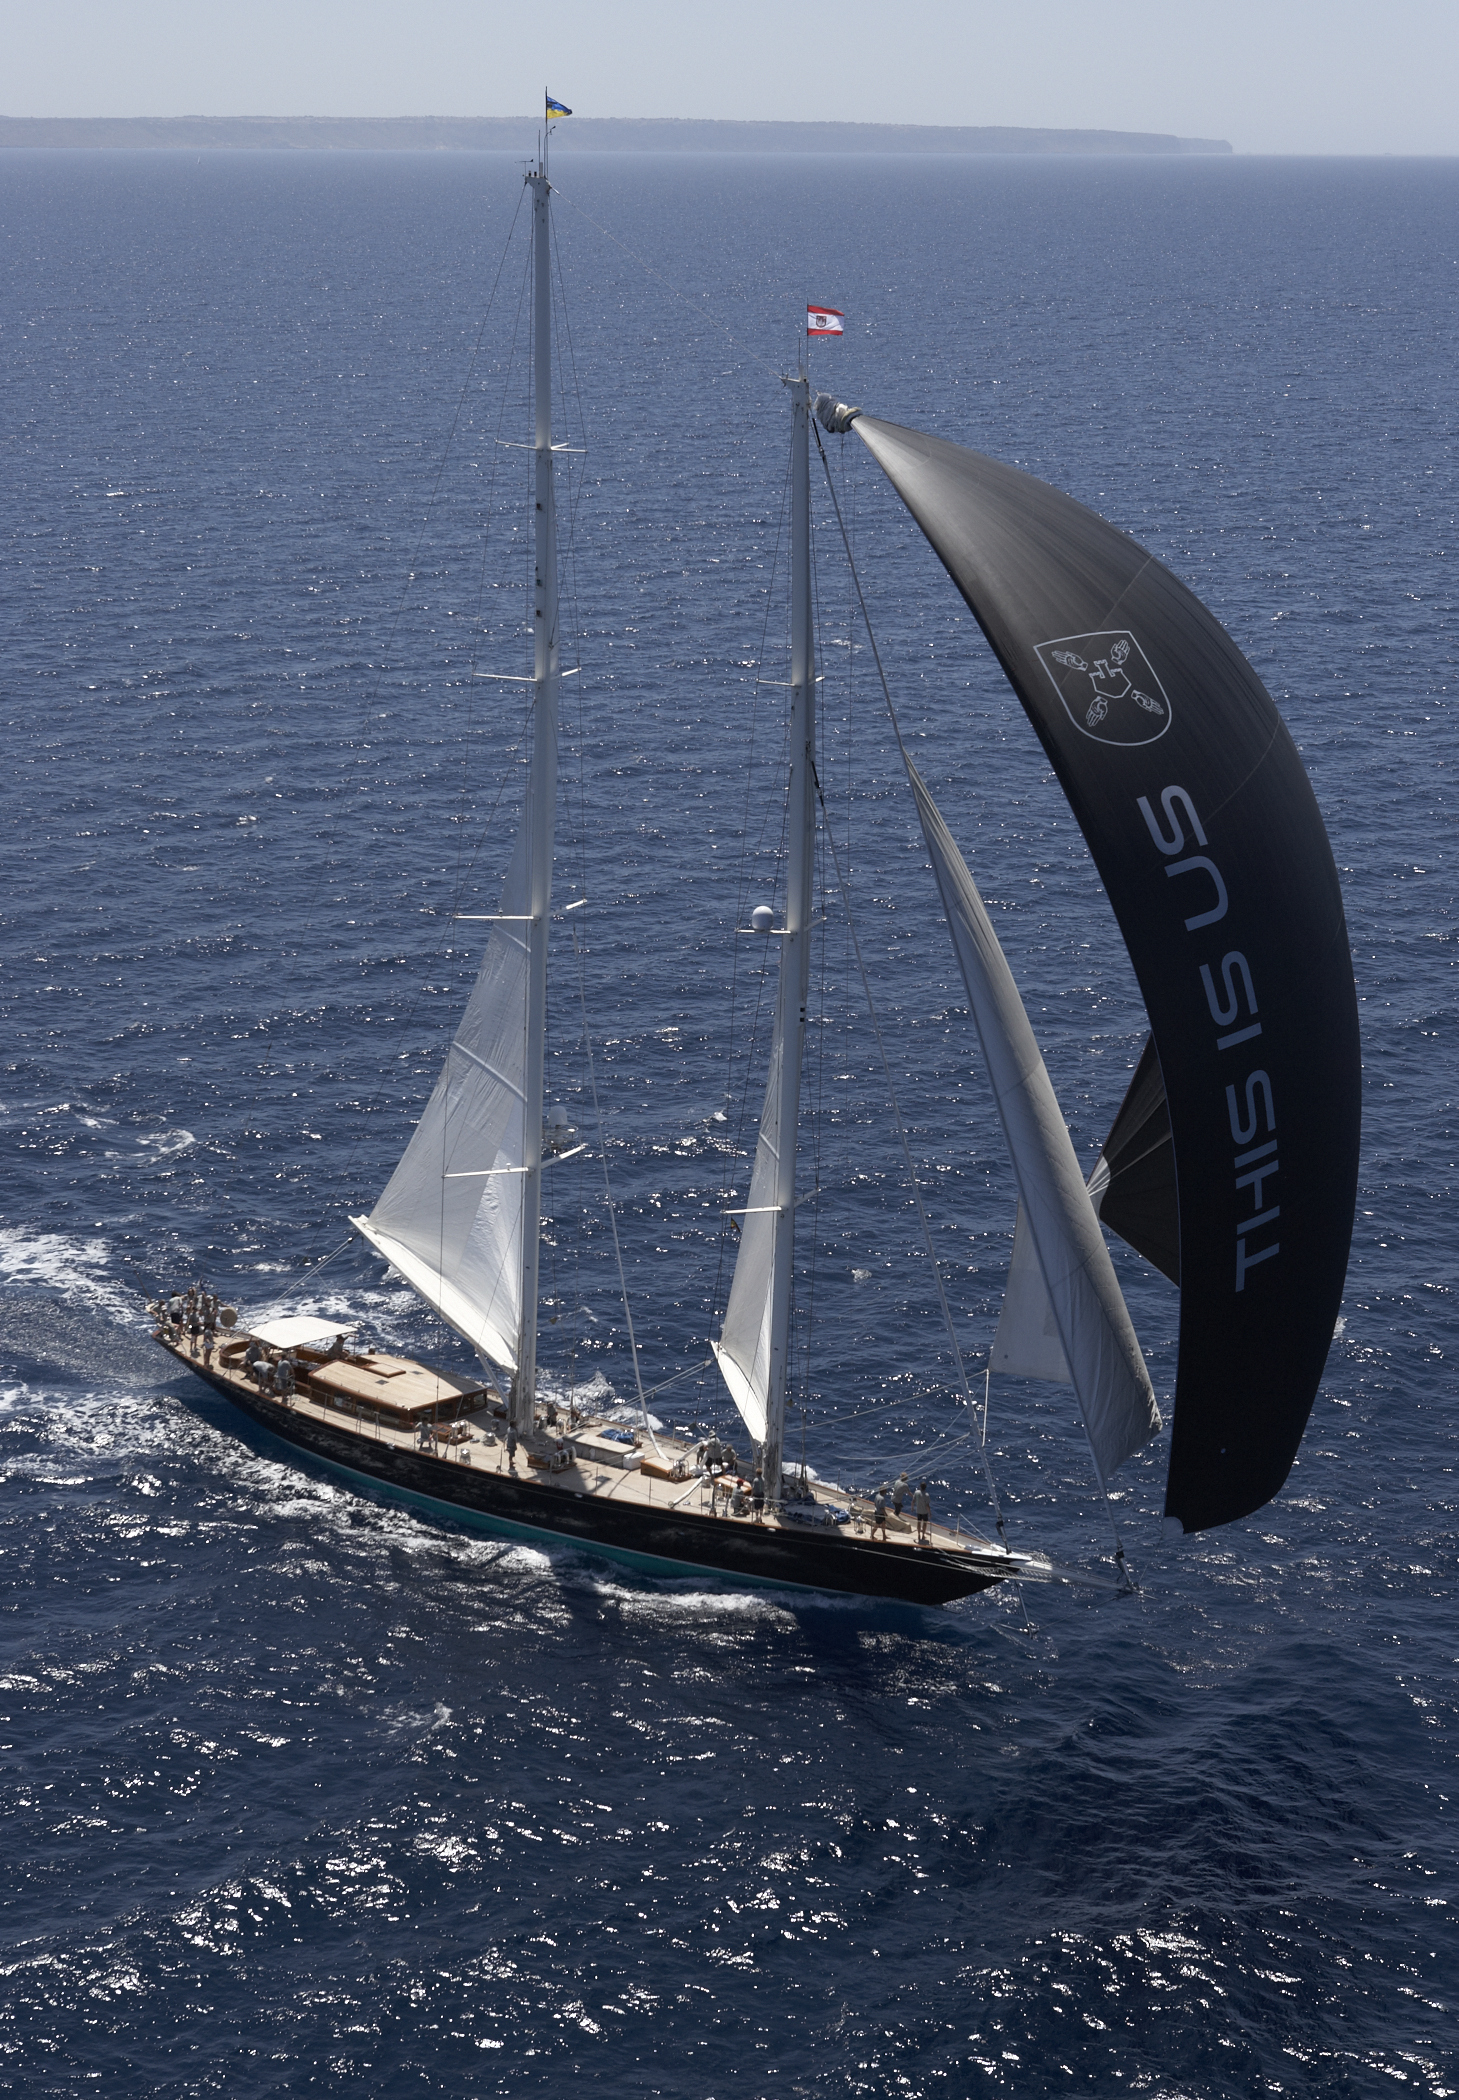 Yacht THIS IS US - Under Full Sail With Spinaker